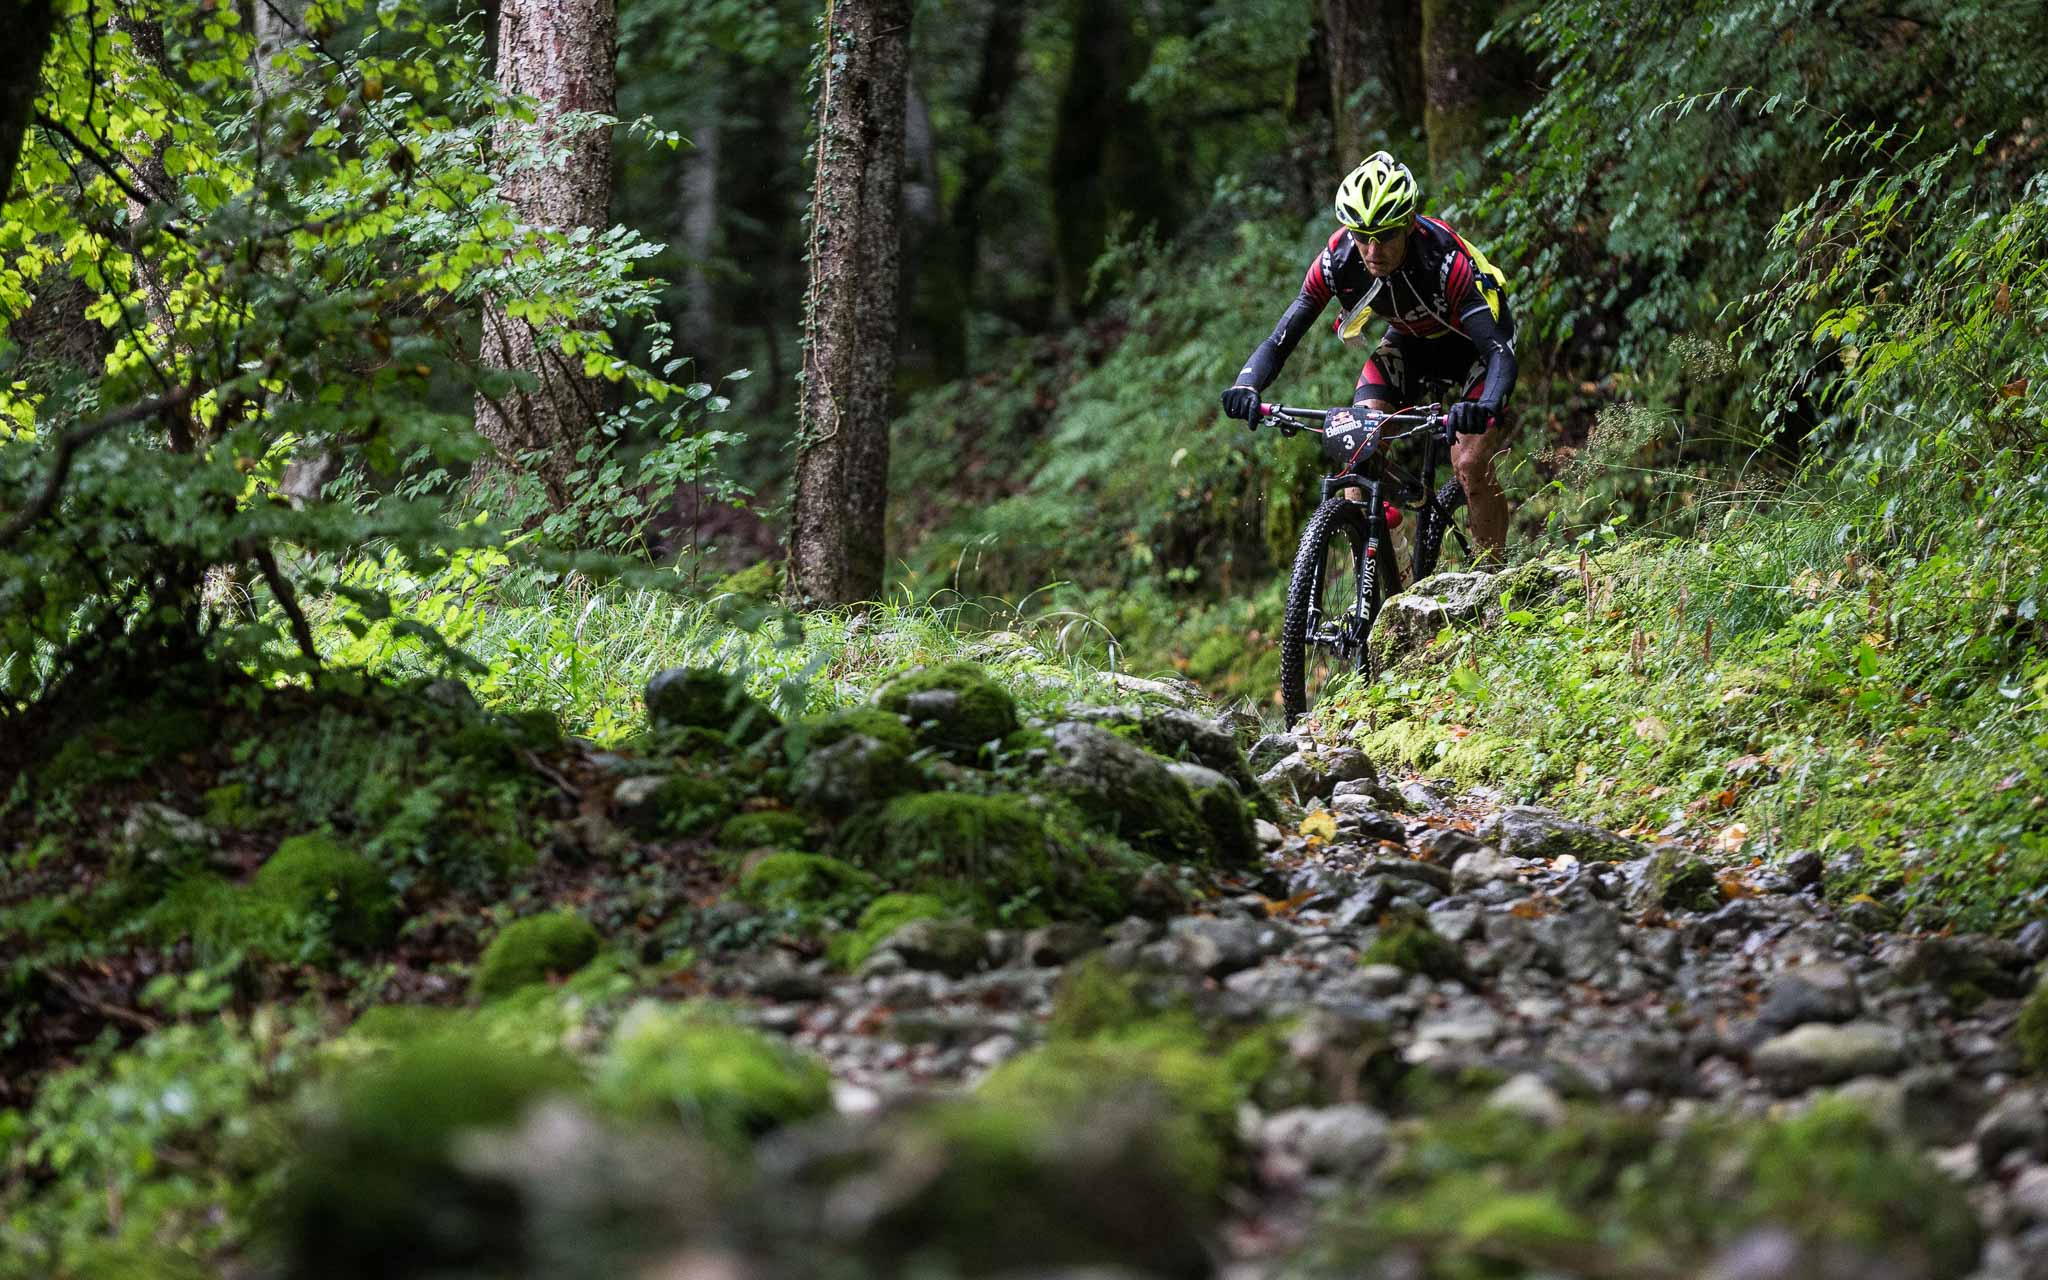 Hansueli Stauffer of Swiss Team performs during the Red Bull Elements in Talloires, France, on September 17th 2016 // Richard Bord / Red Bull Content Pool // P-20160917-01578 // Usage for editorial use only // Please go to www.redbullcontentpool.com for further information. //